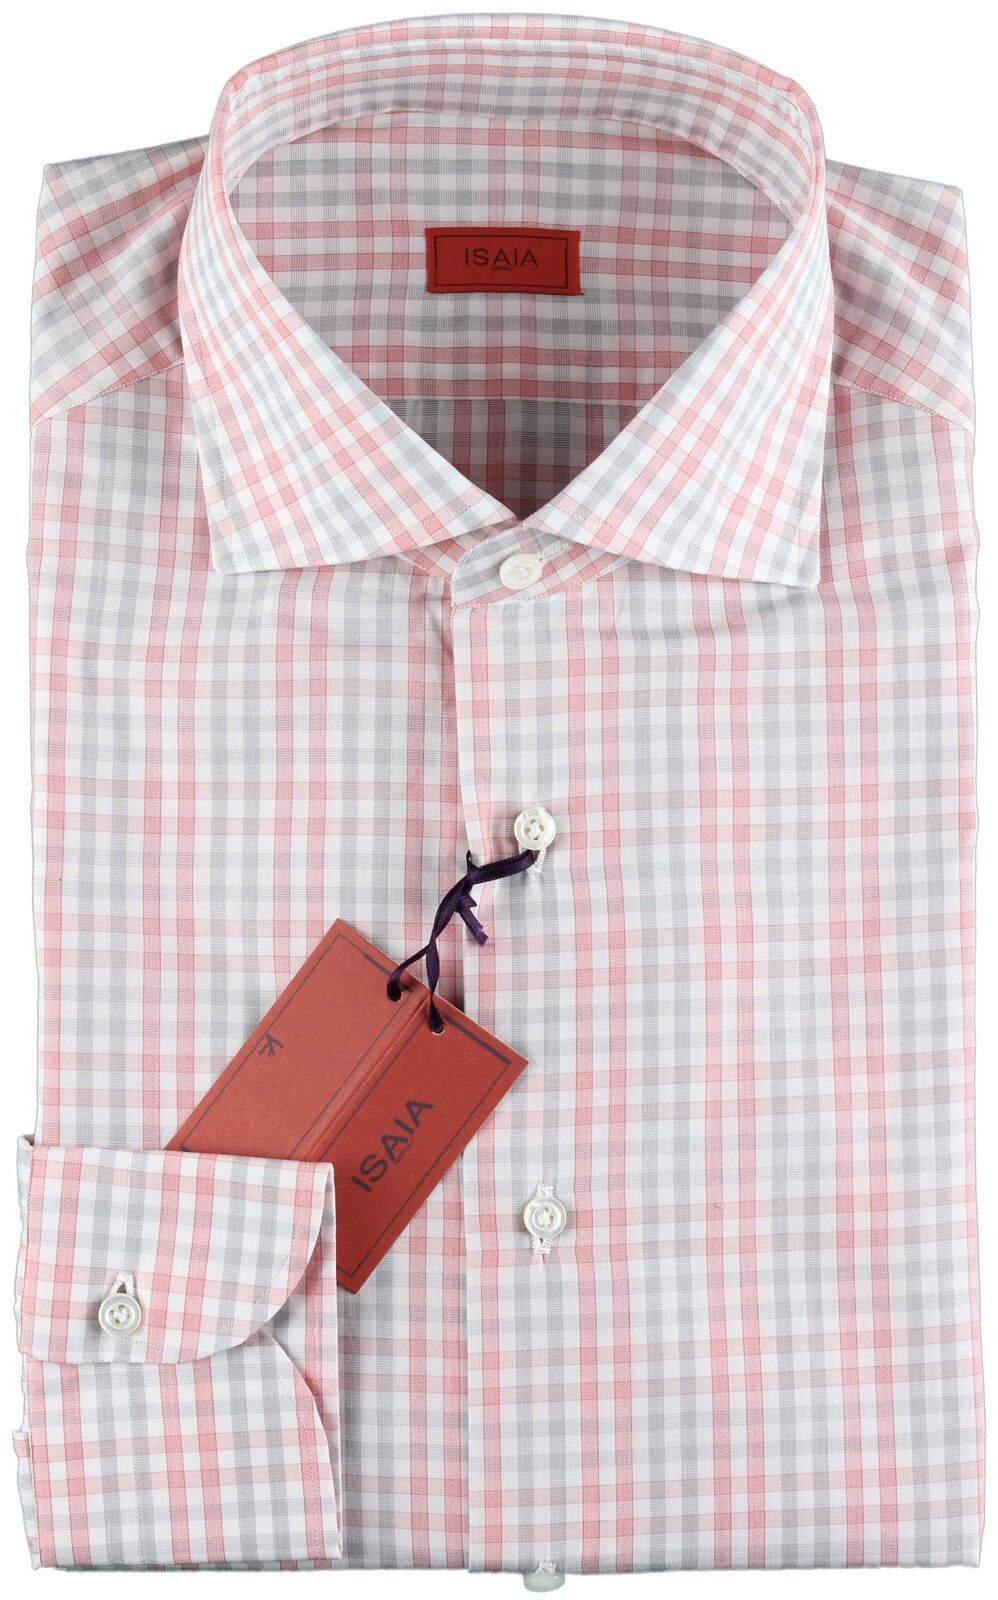 NWT ISAIA SHIRT white, pink & grey striped luxury spread handmade  40 15 3